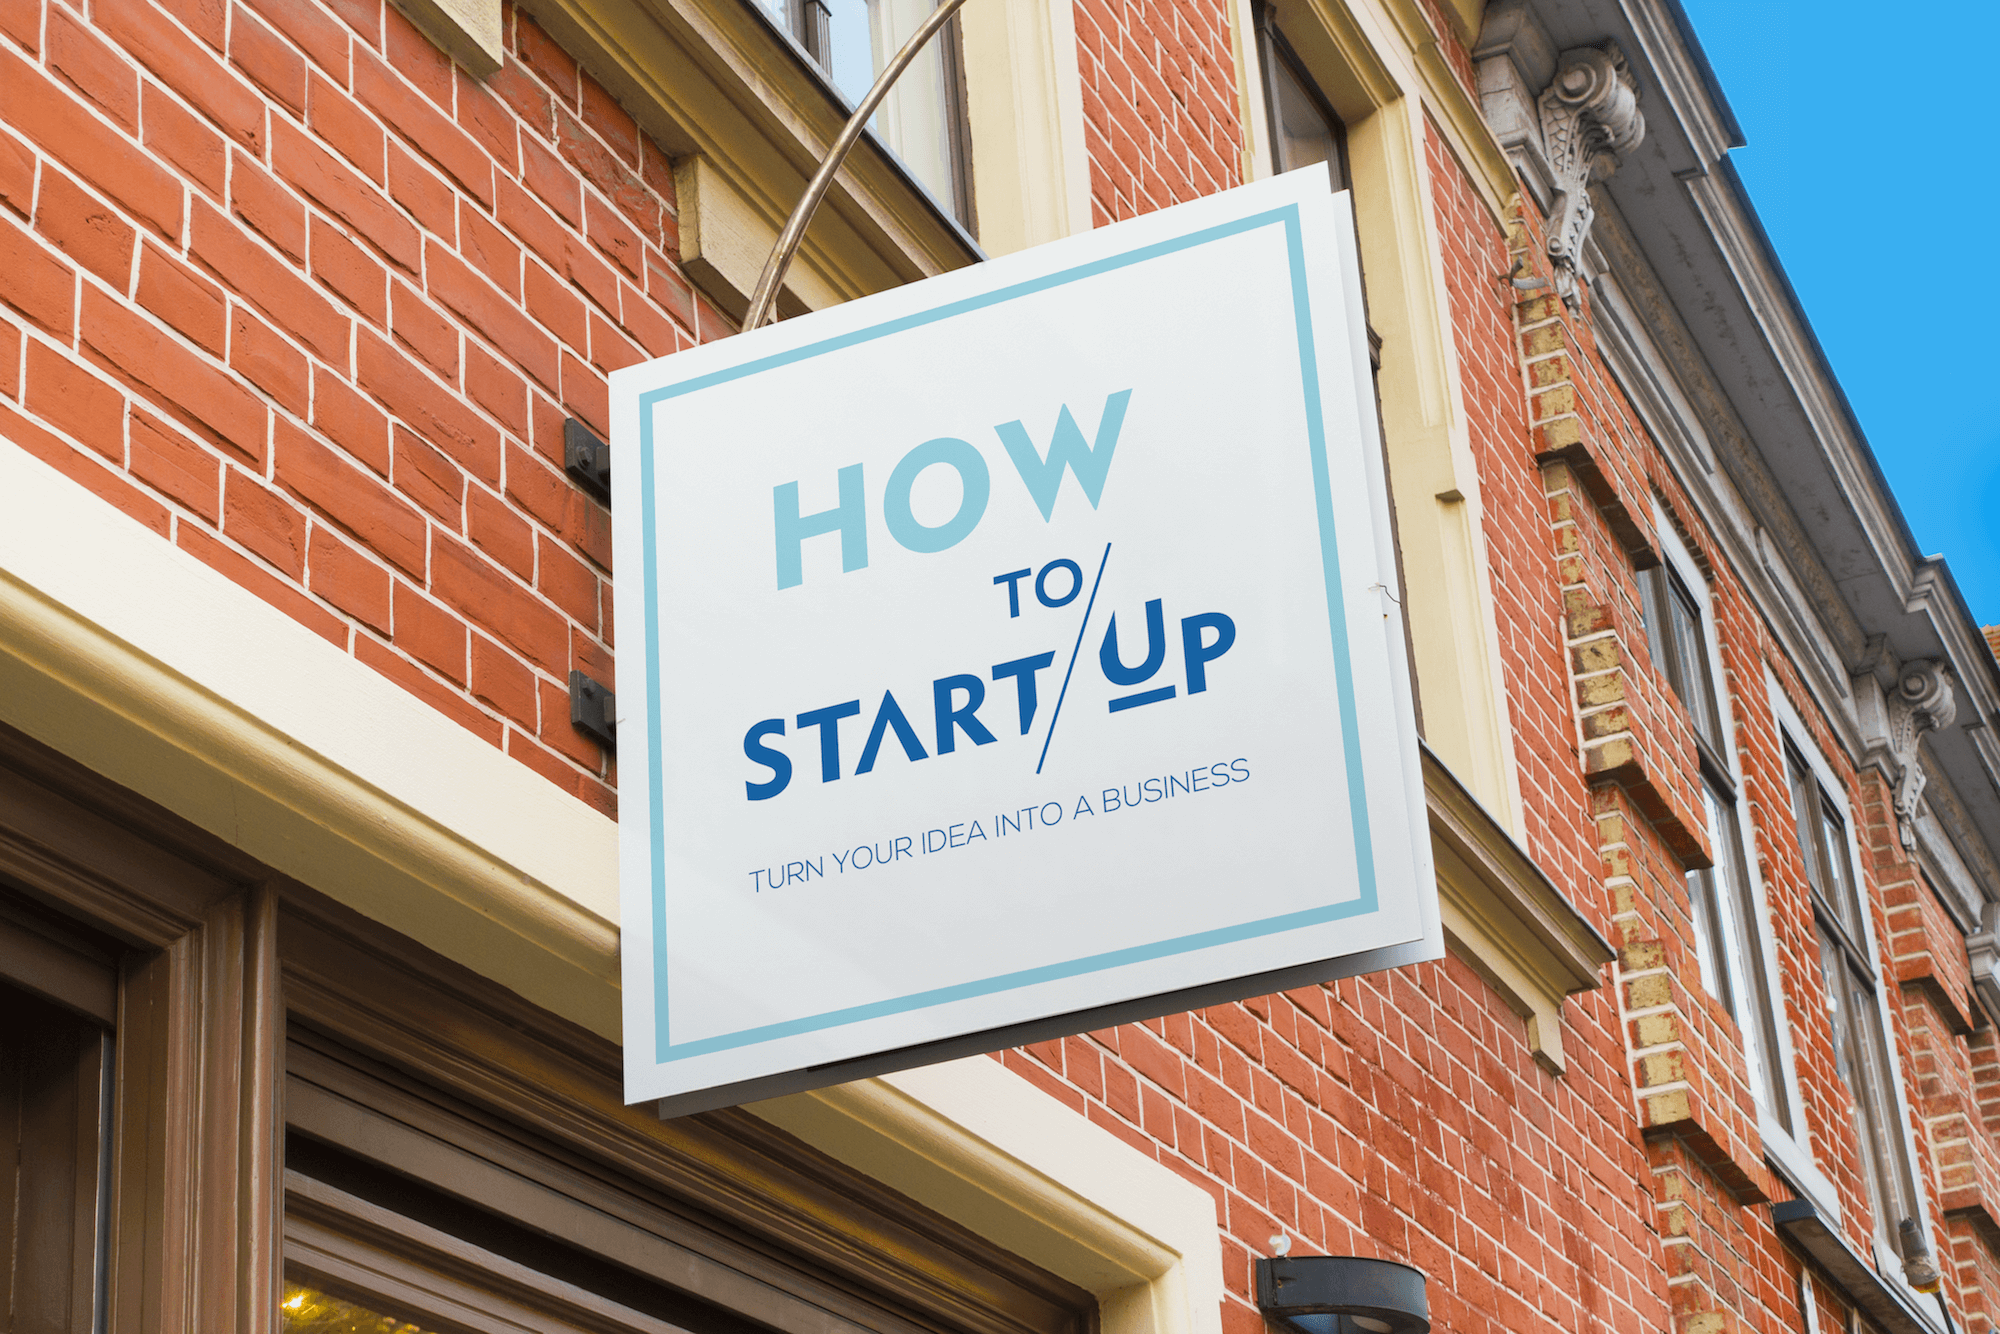 How to Start Up Sign